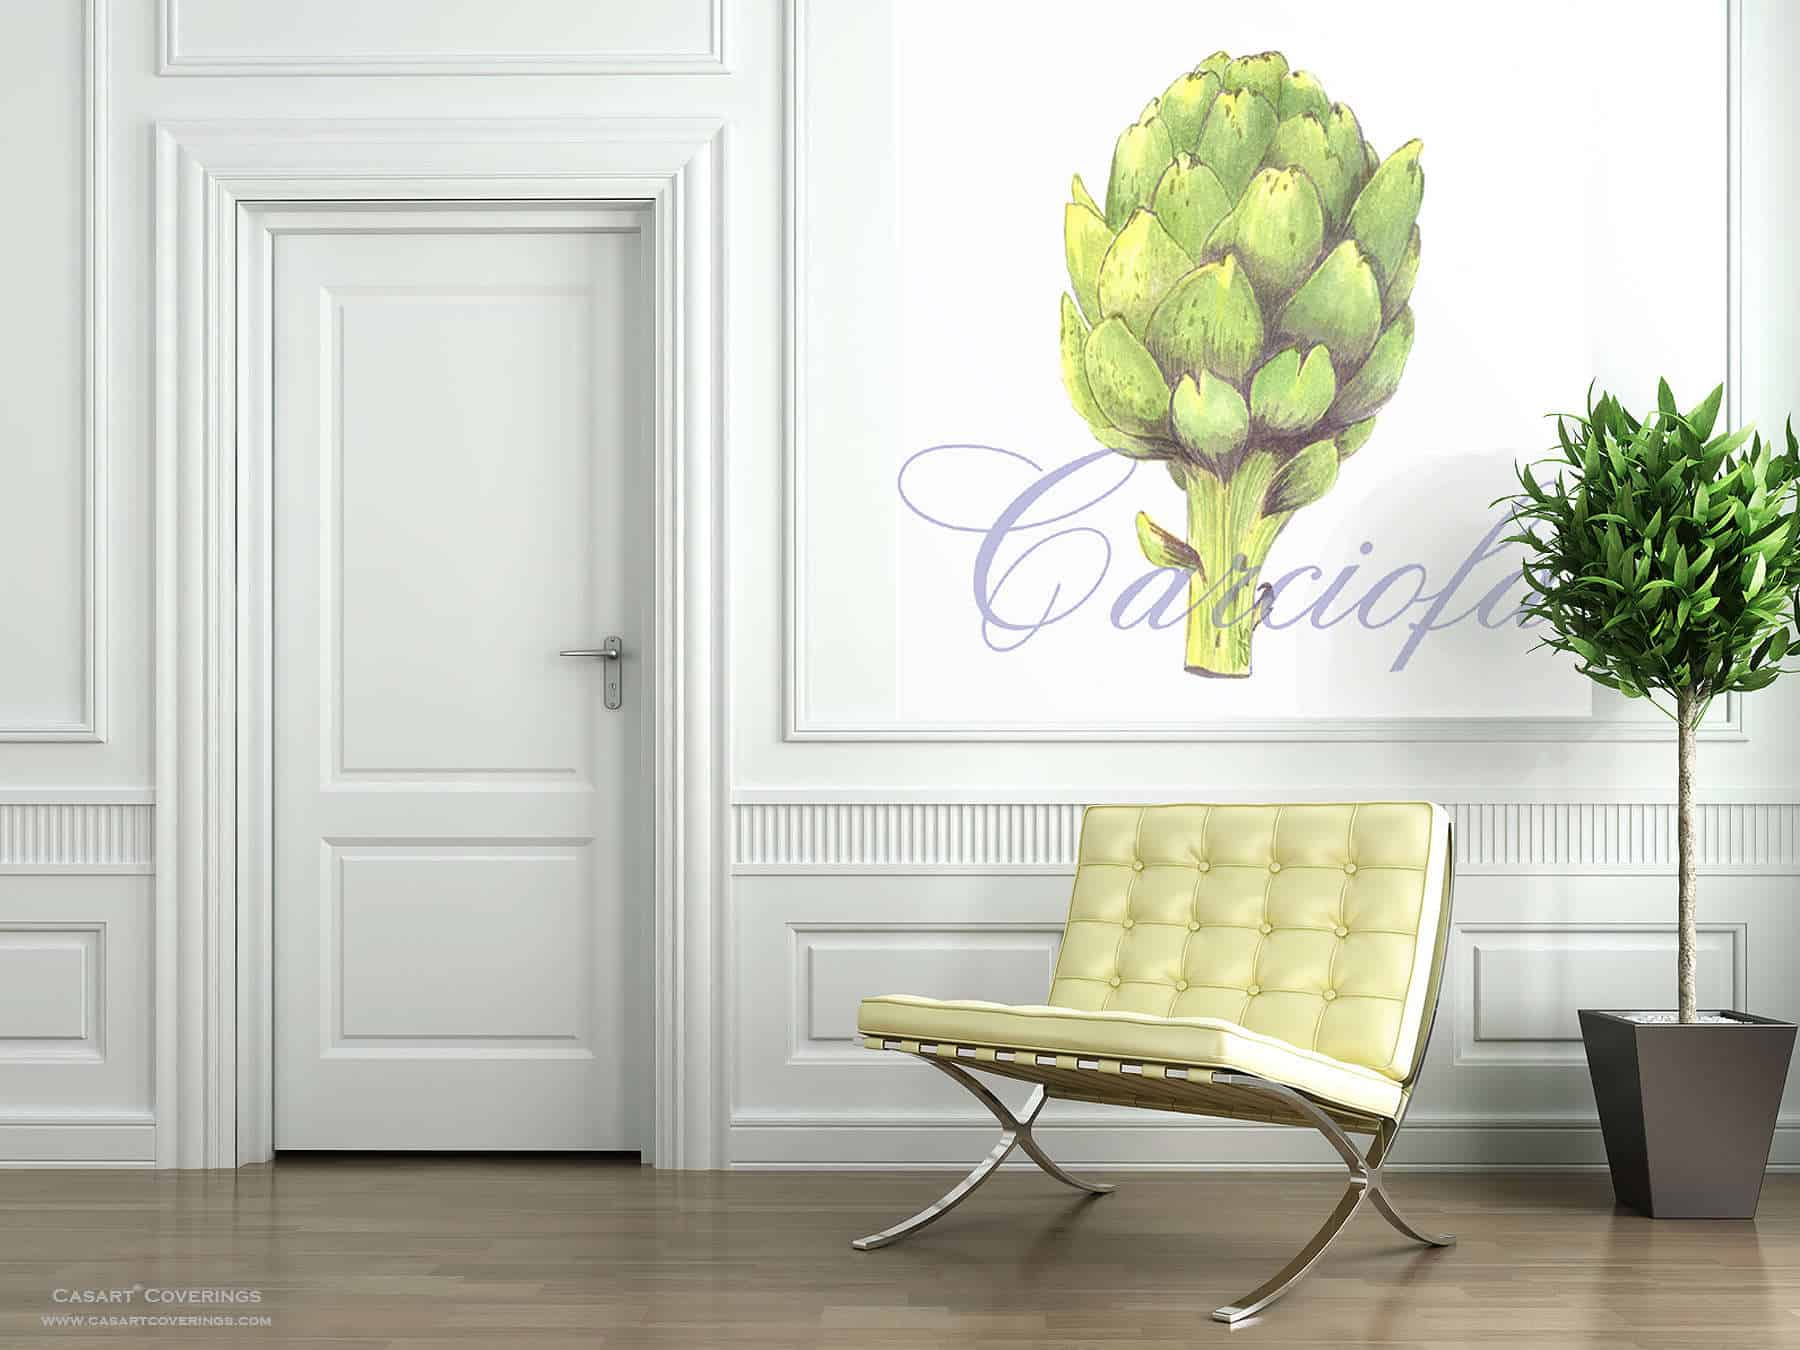 Casart Coverings Artichoke self-adhesive wallpaper Room View